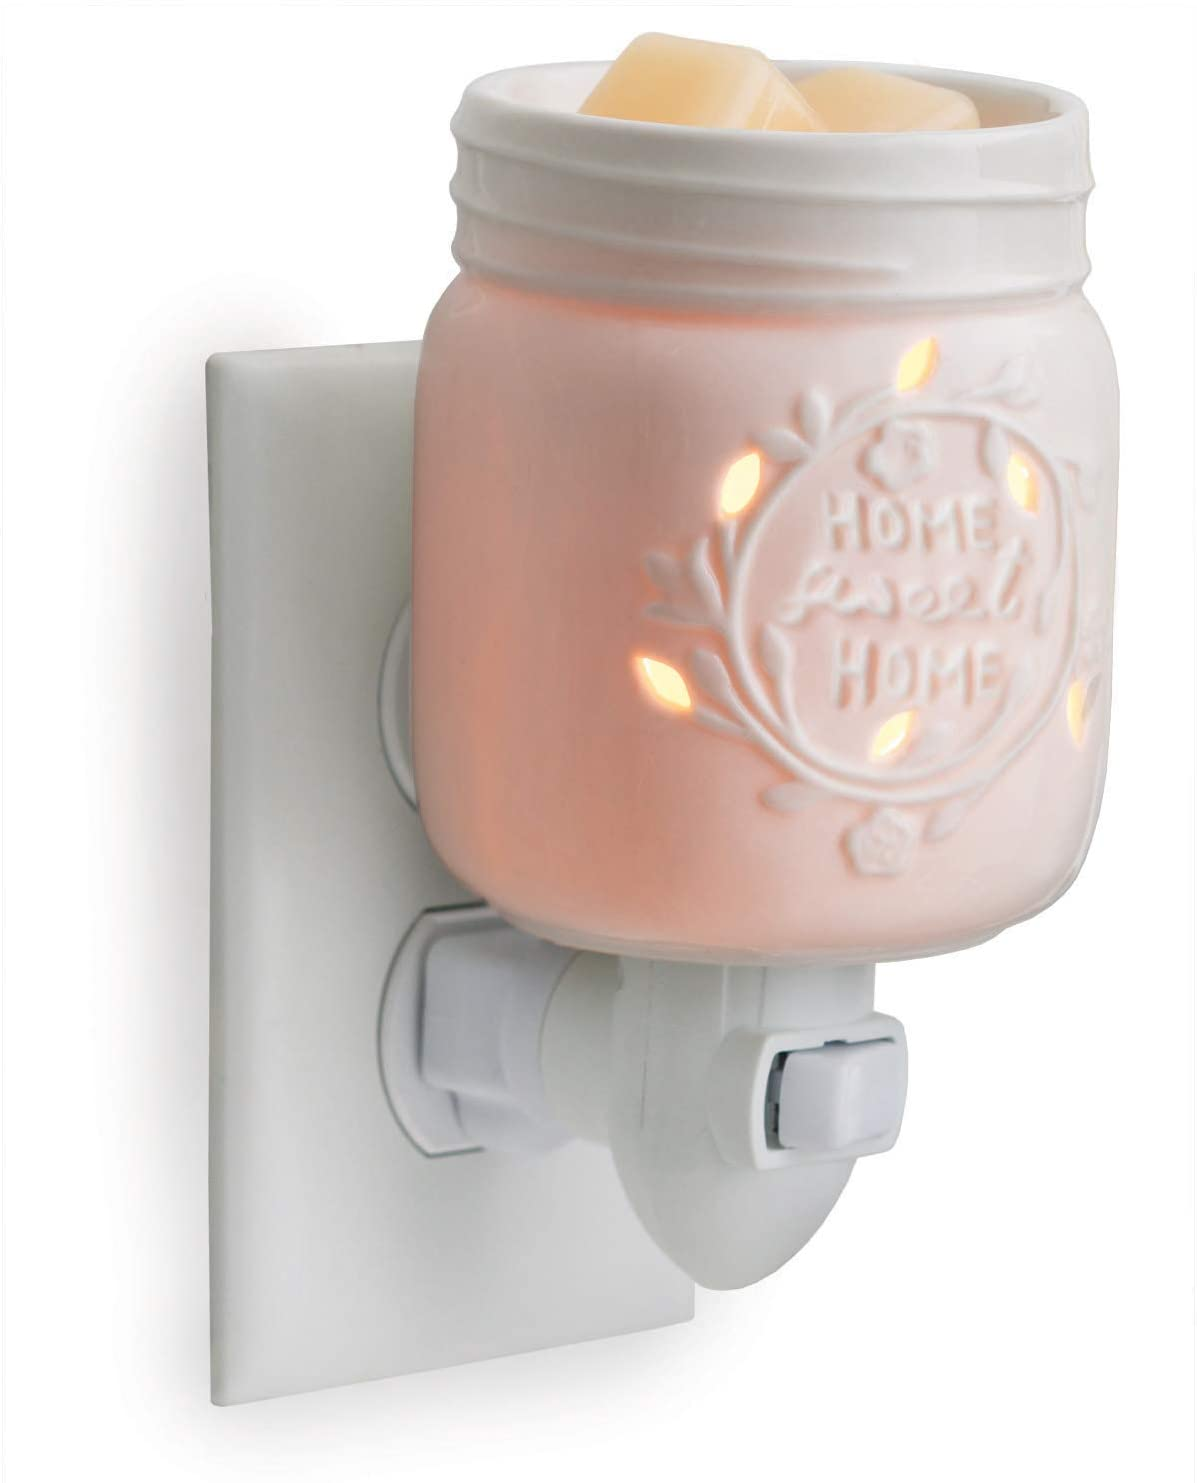 Candle Warmers ETC Decorative Pluggable Fragrance Warmer